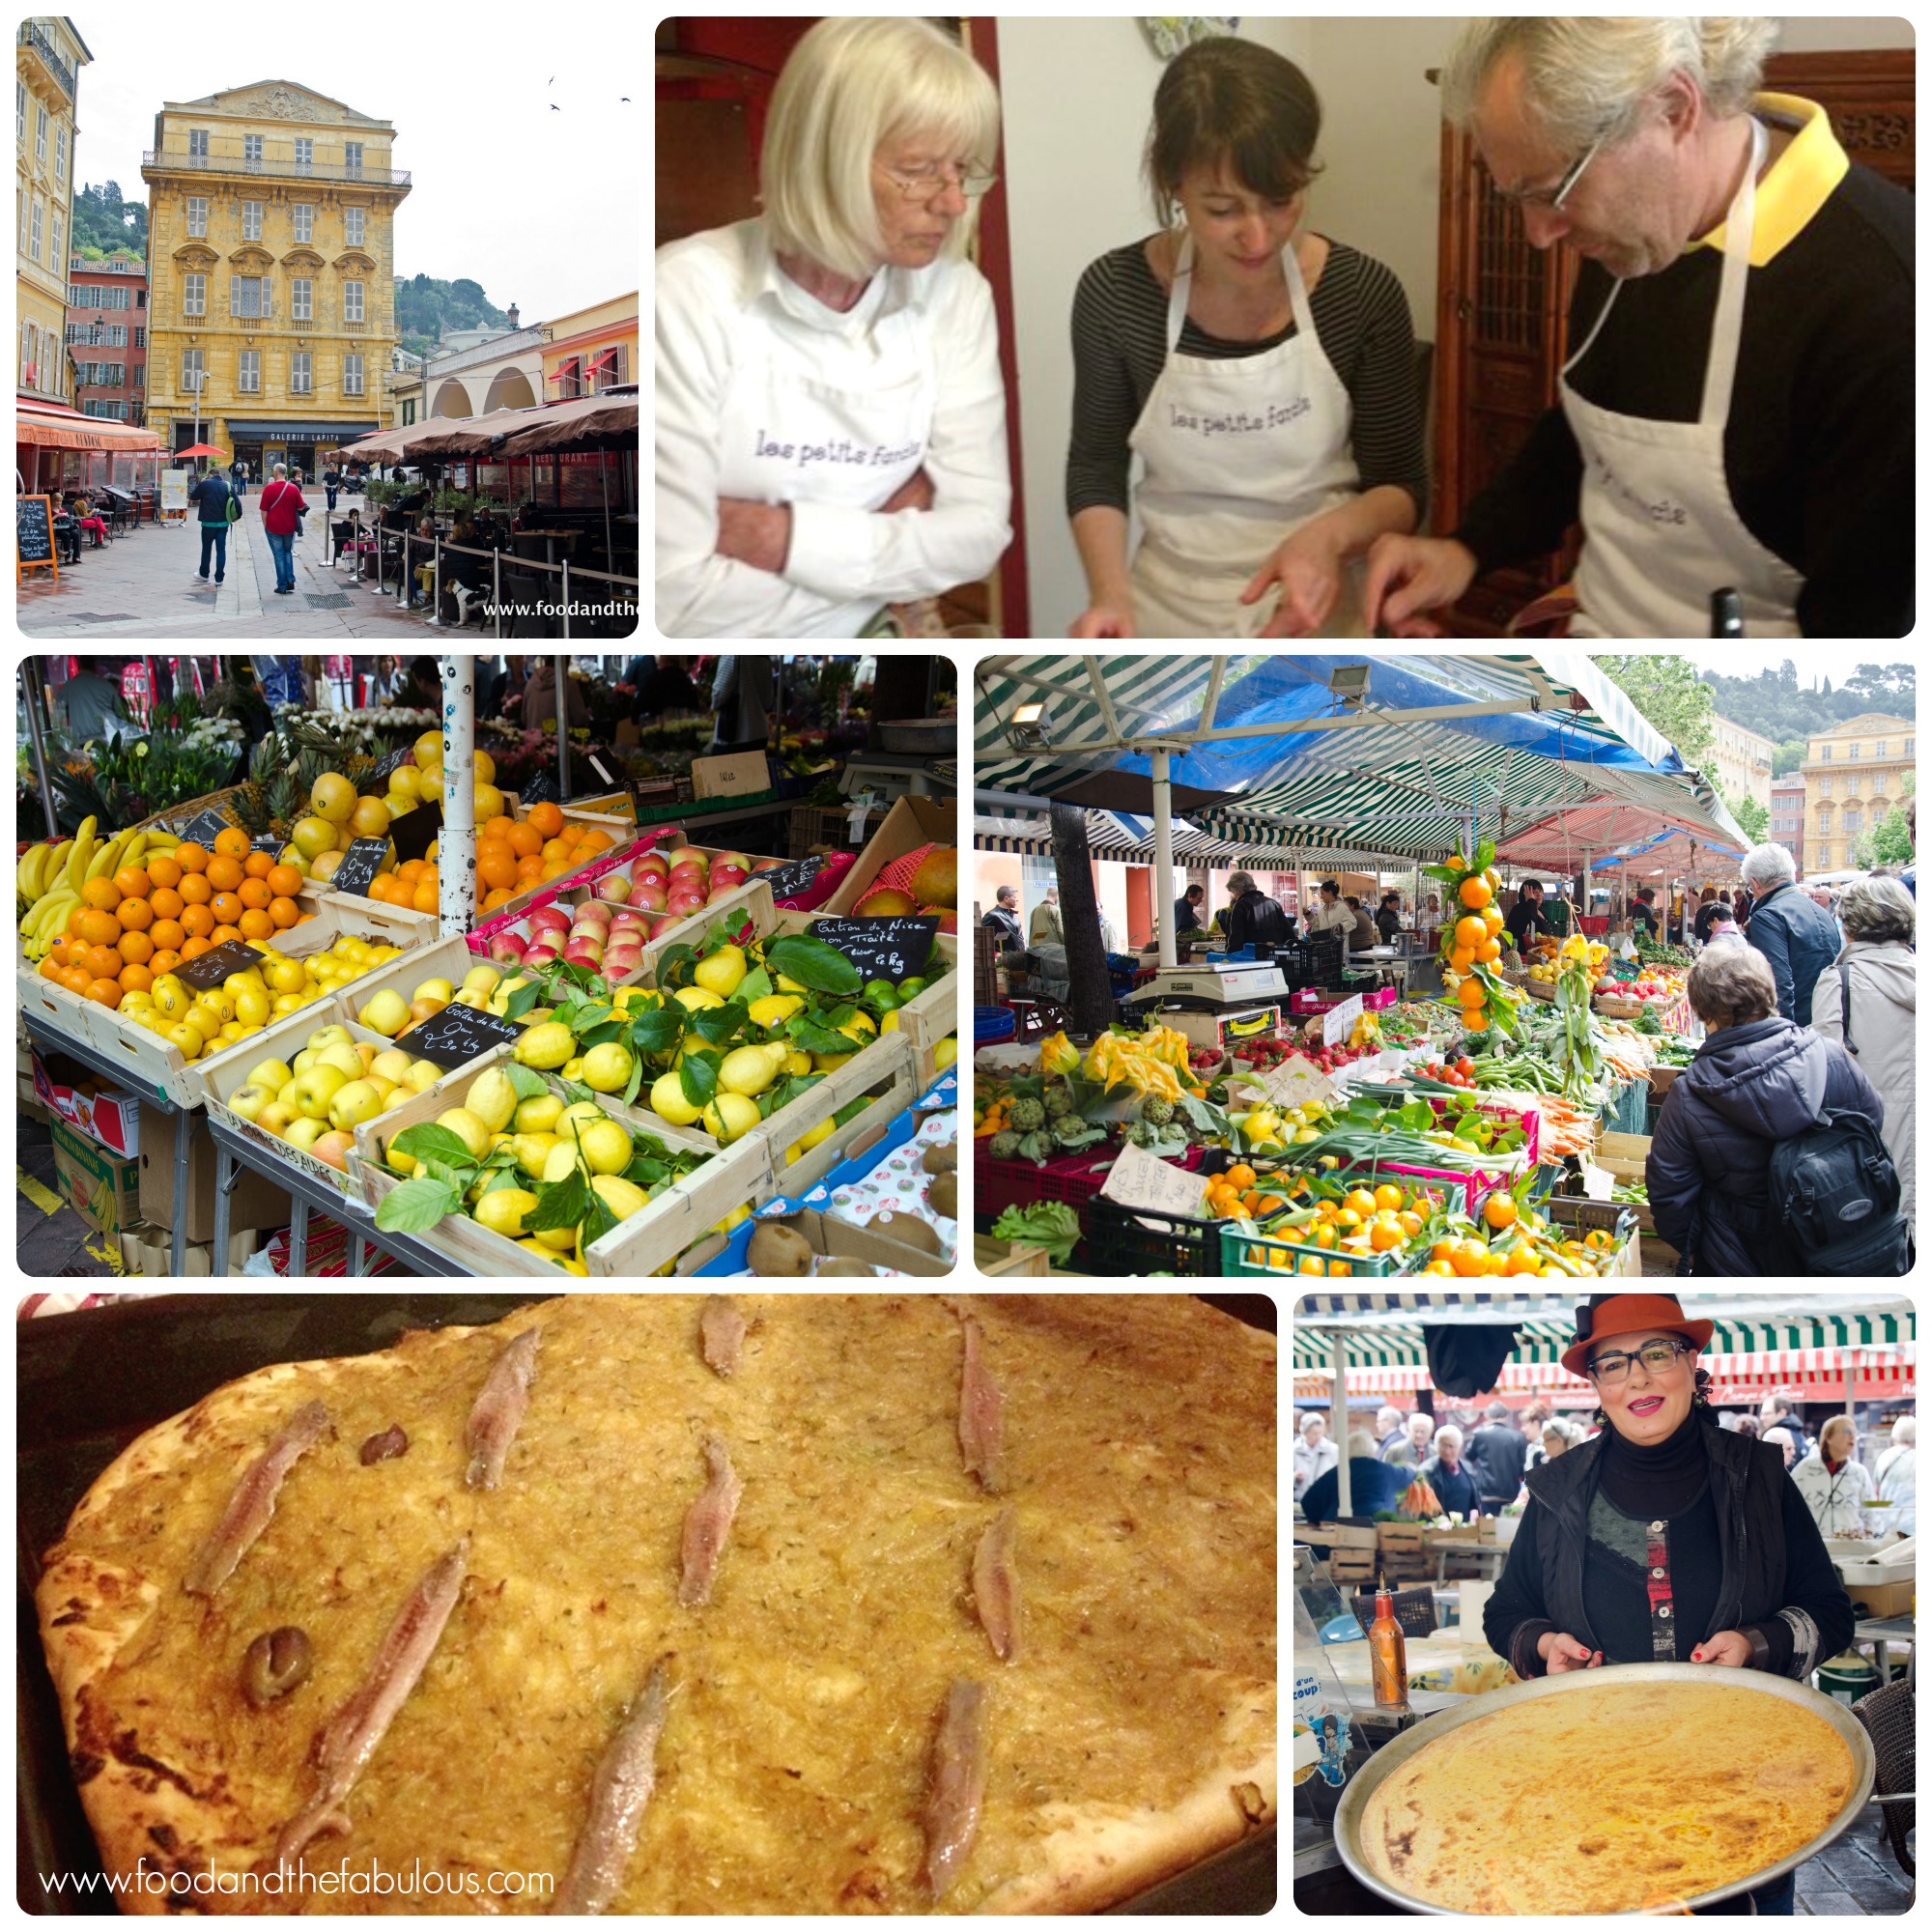 Scenes from the market in Nice and the cooking class with Rosa Jackson